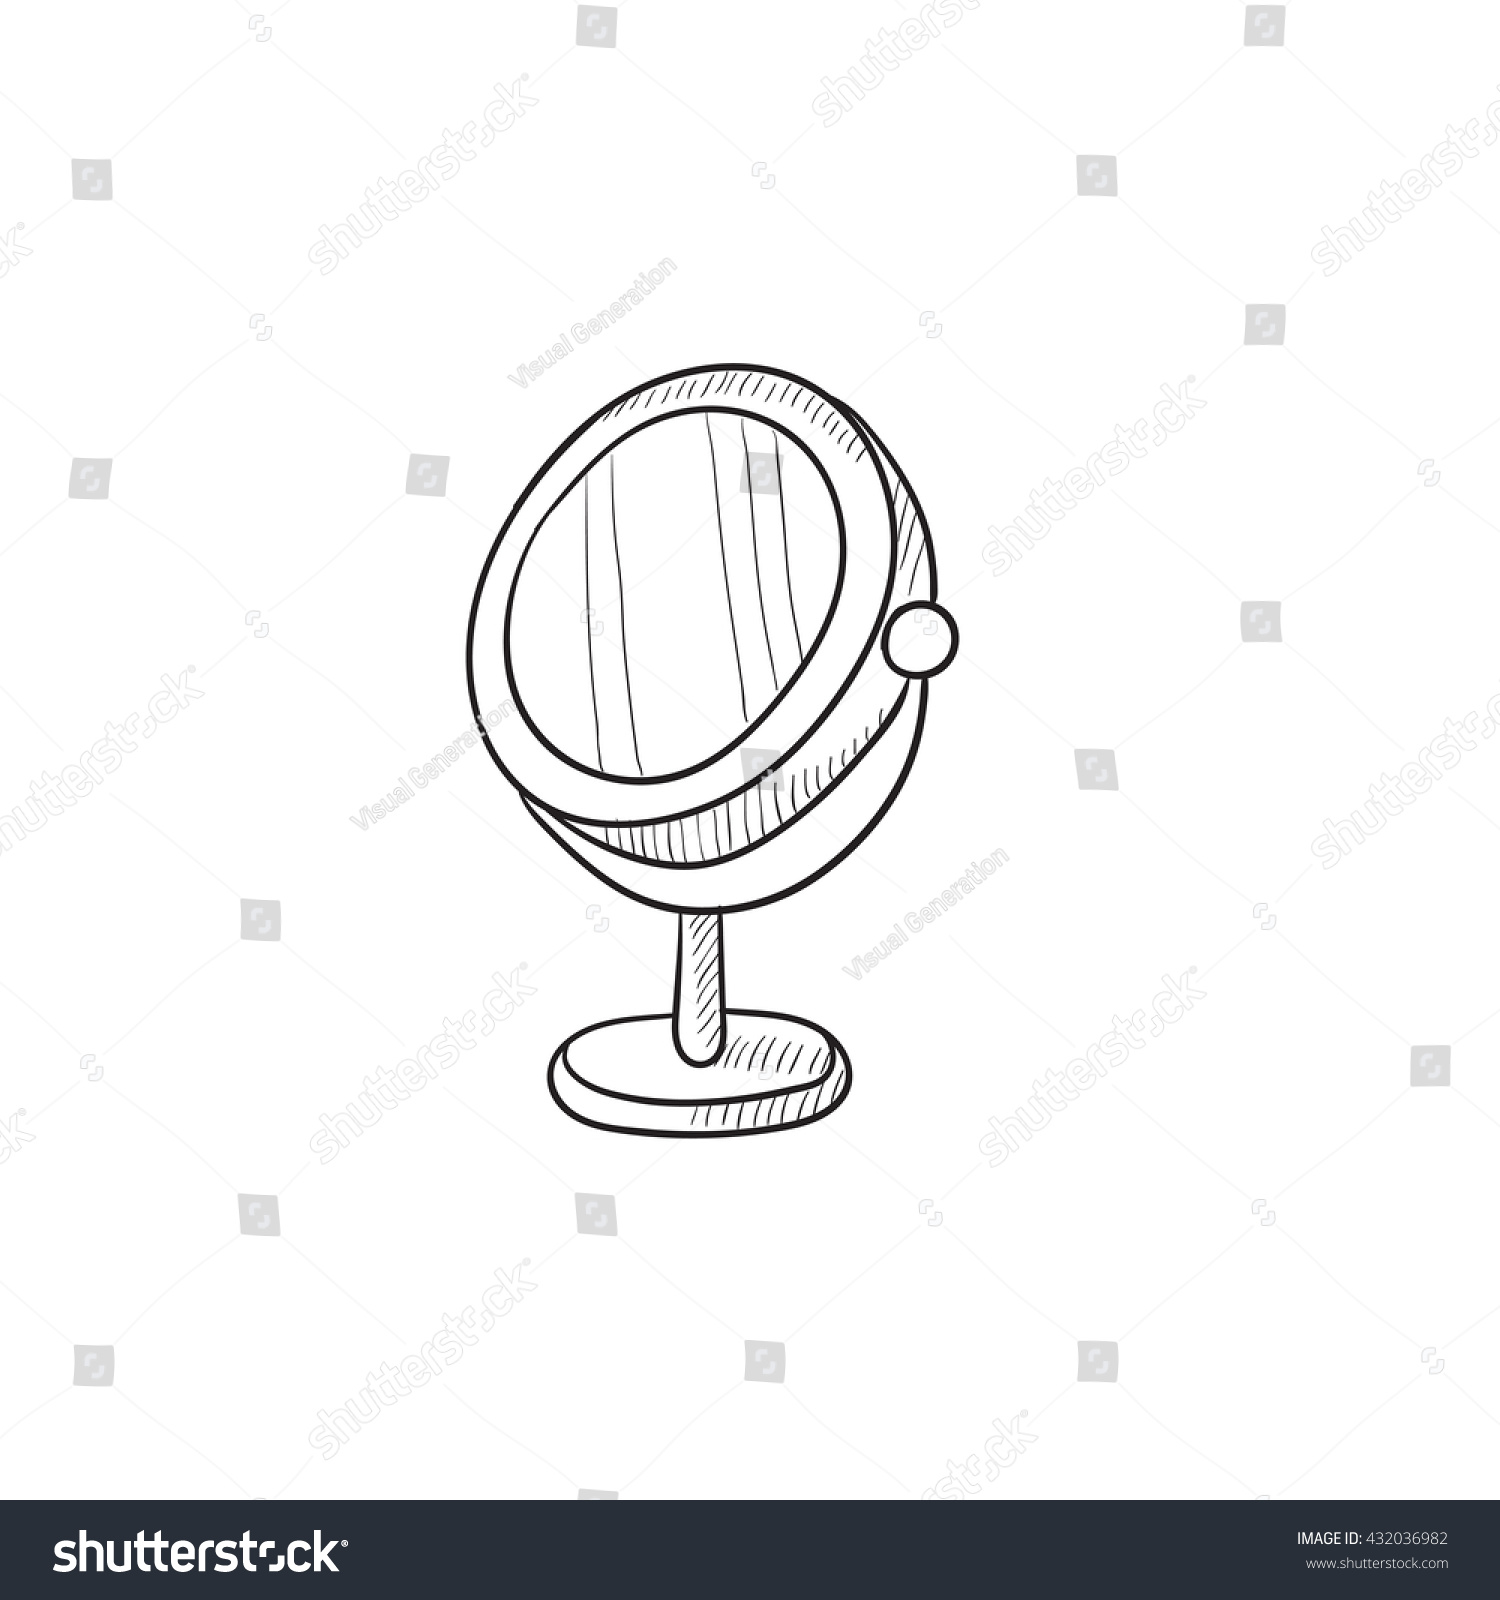 hand mirror sketch. Round Makeup Mirror Vector Sketch Icon Isolated On Background. Hand Drawn